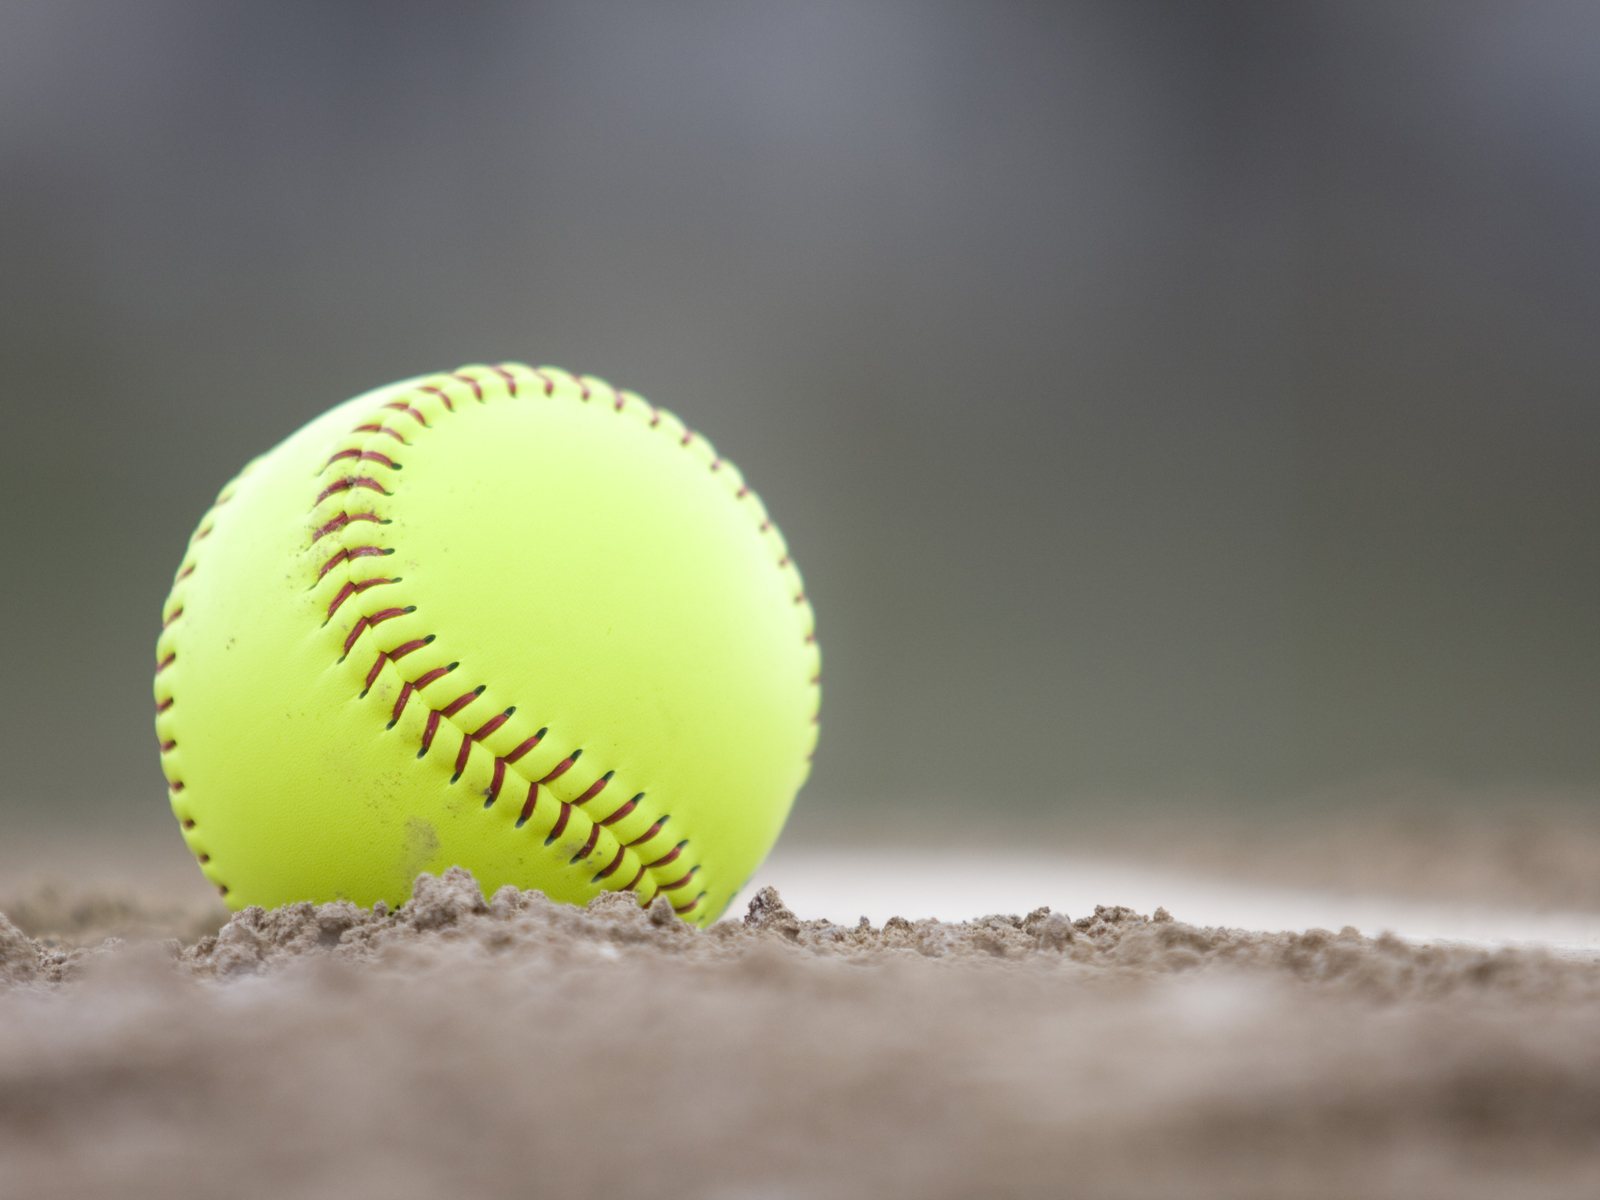 Softball Wallpapers for Desktop 1600x1200